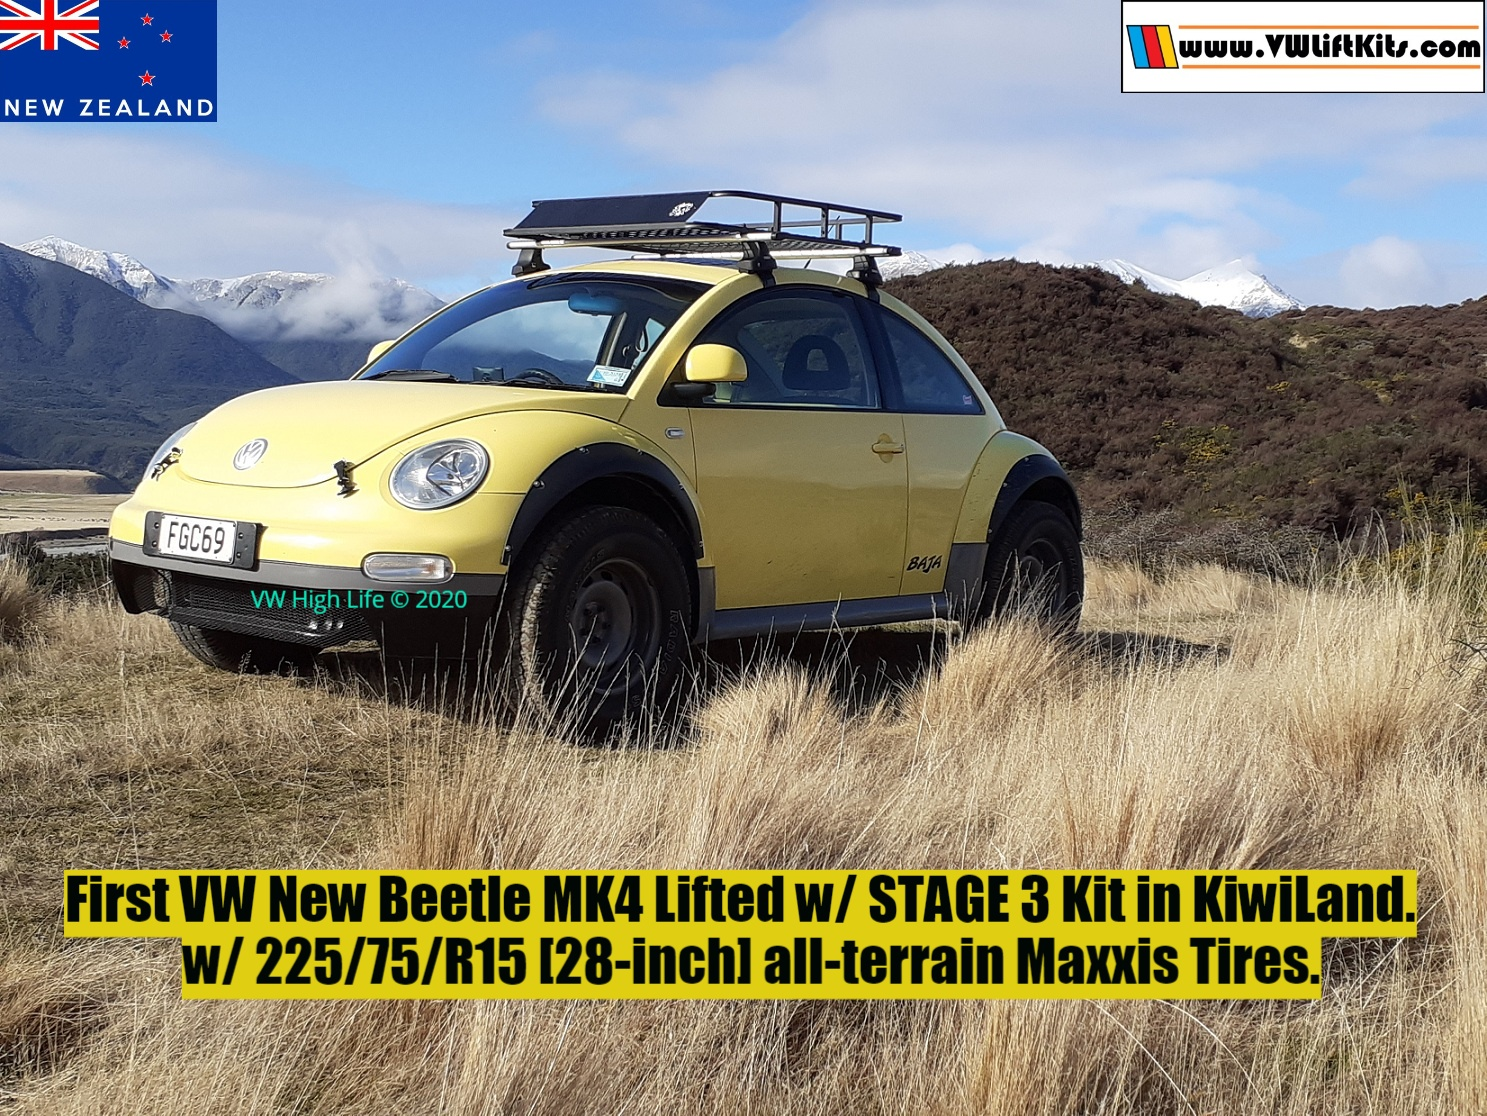 VW Beetle MK4 lifted w/ Stage 3 Kit and 28-inch Maxxis Tires! Congrats Richard and his COVID Beetle!.